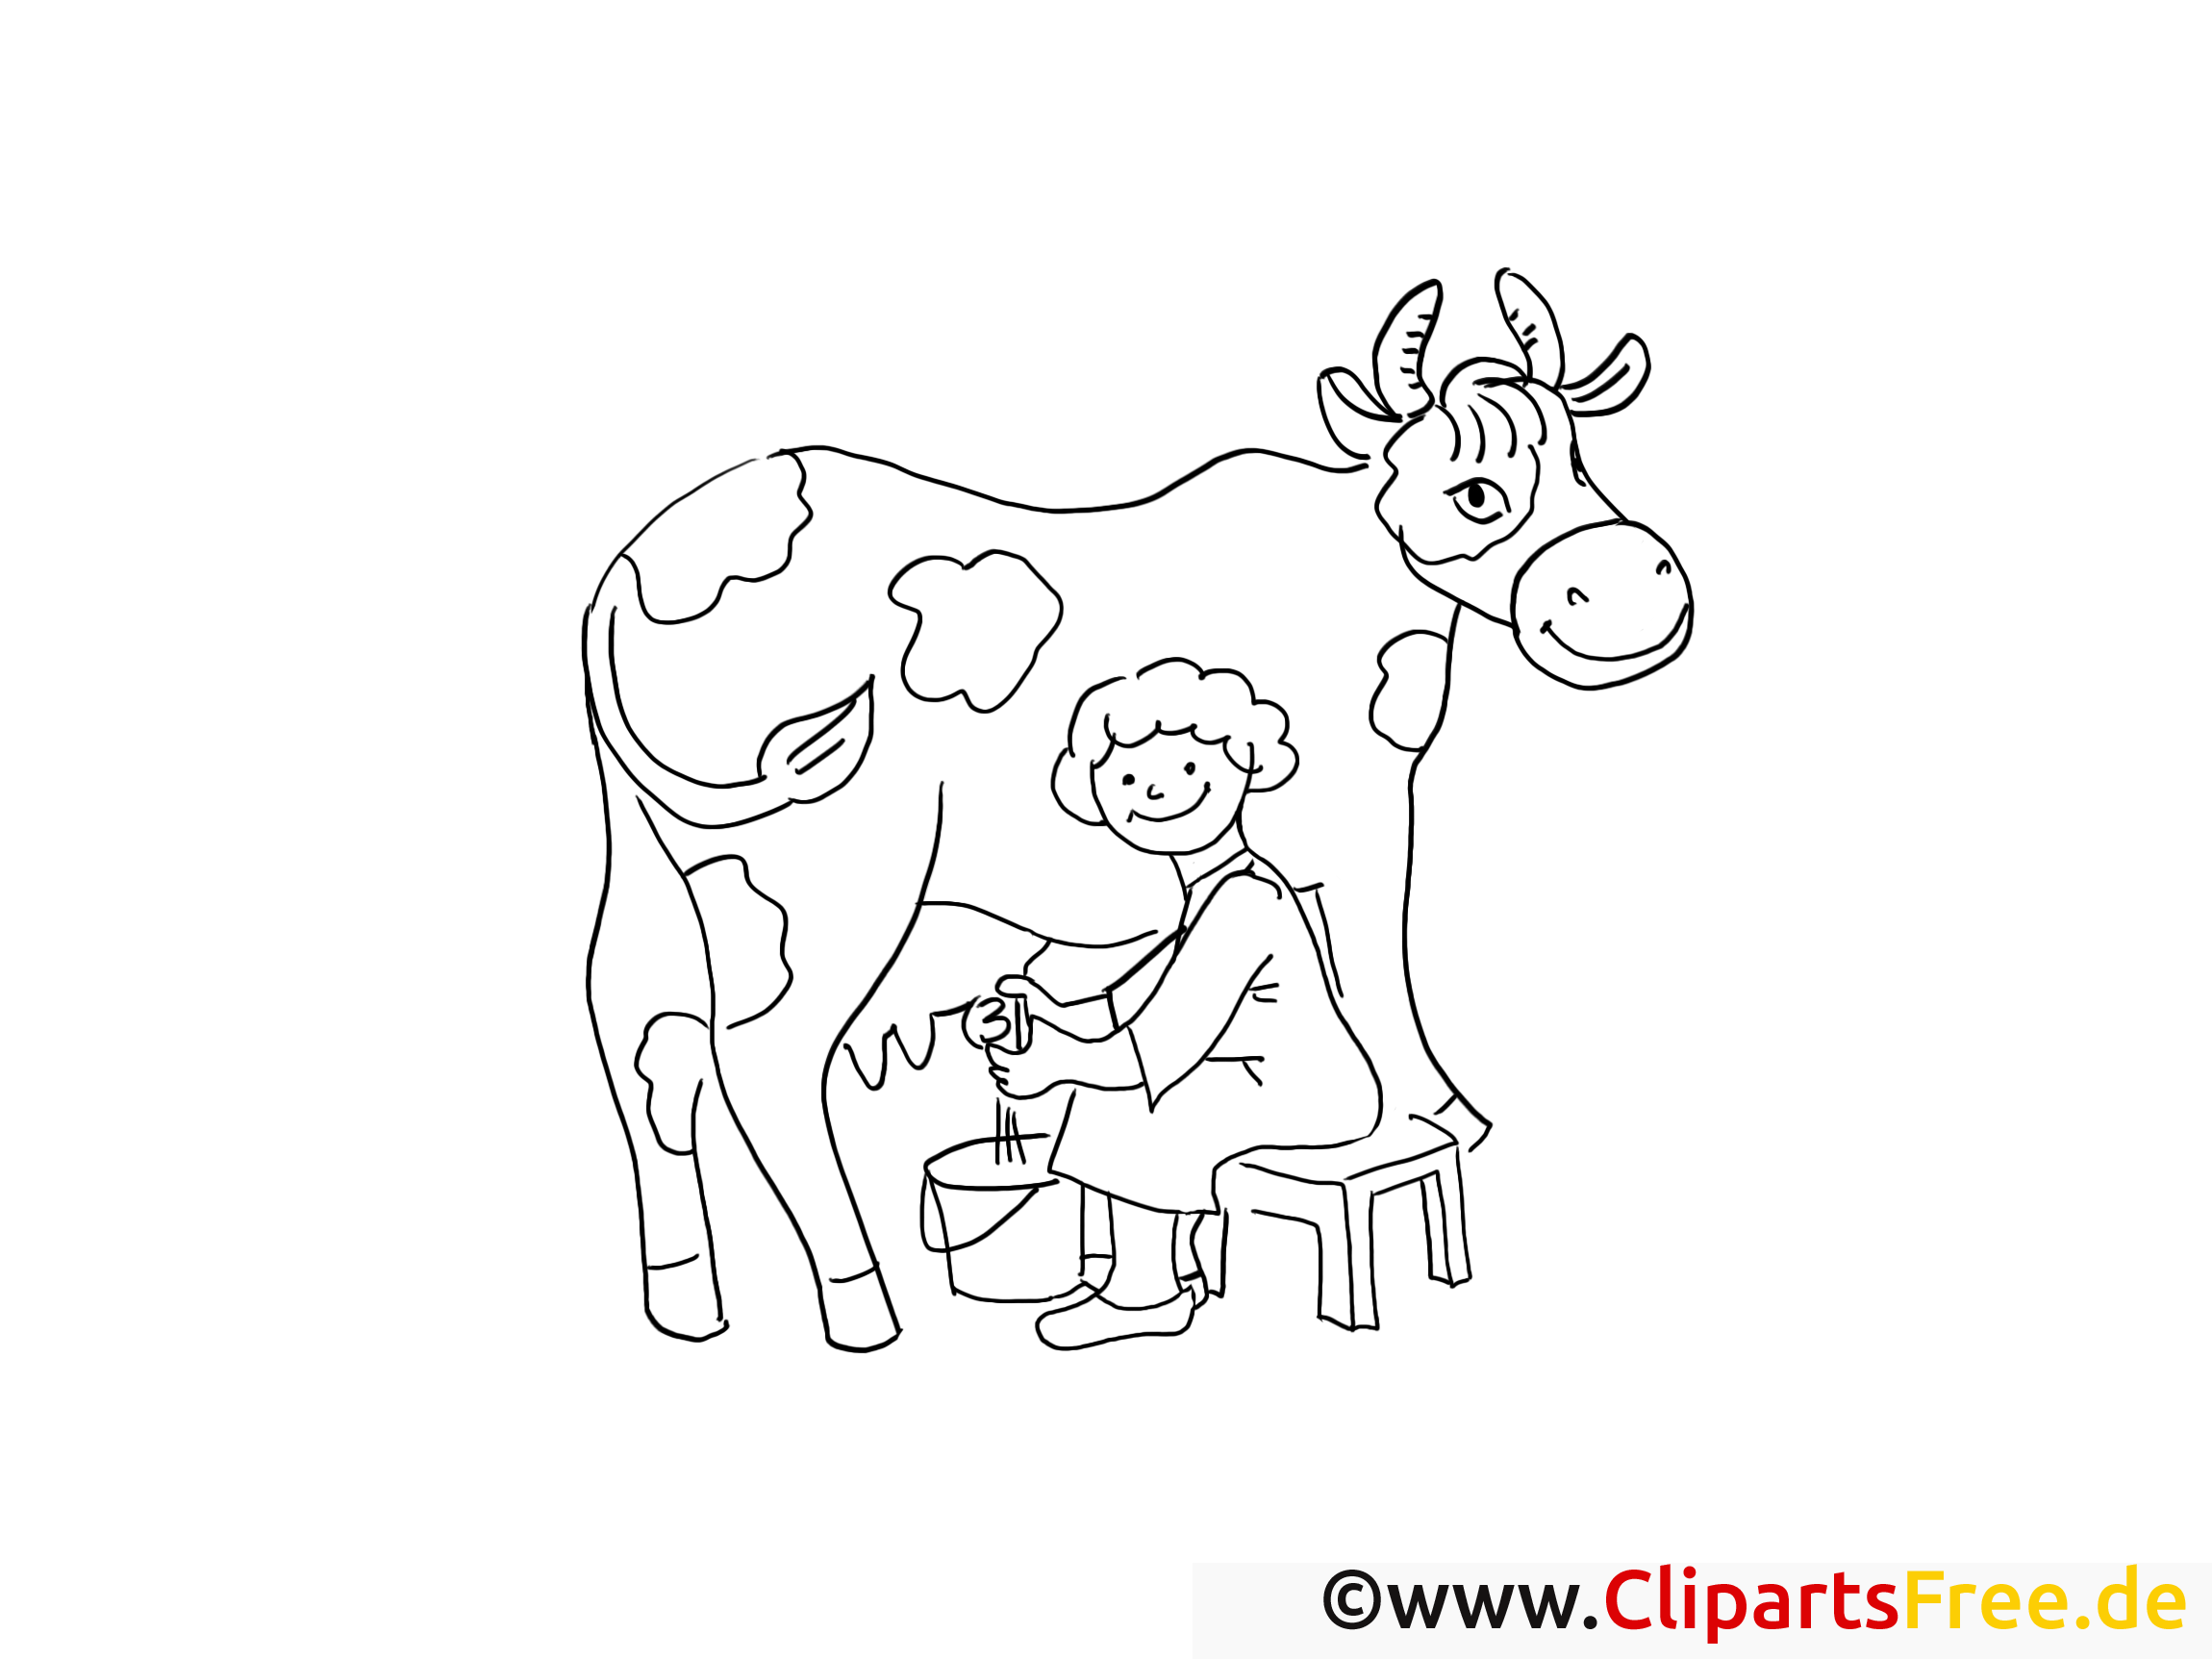 Vache illustration – Coloriage campagne cliparts